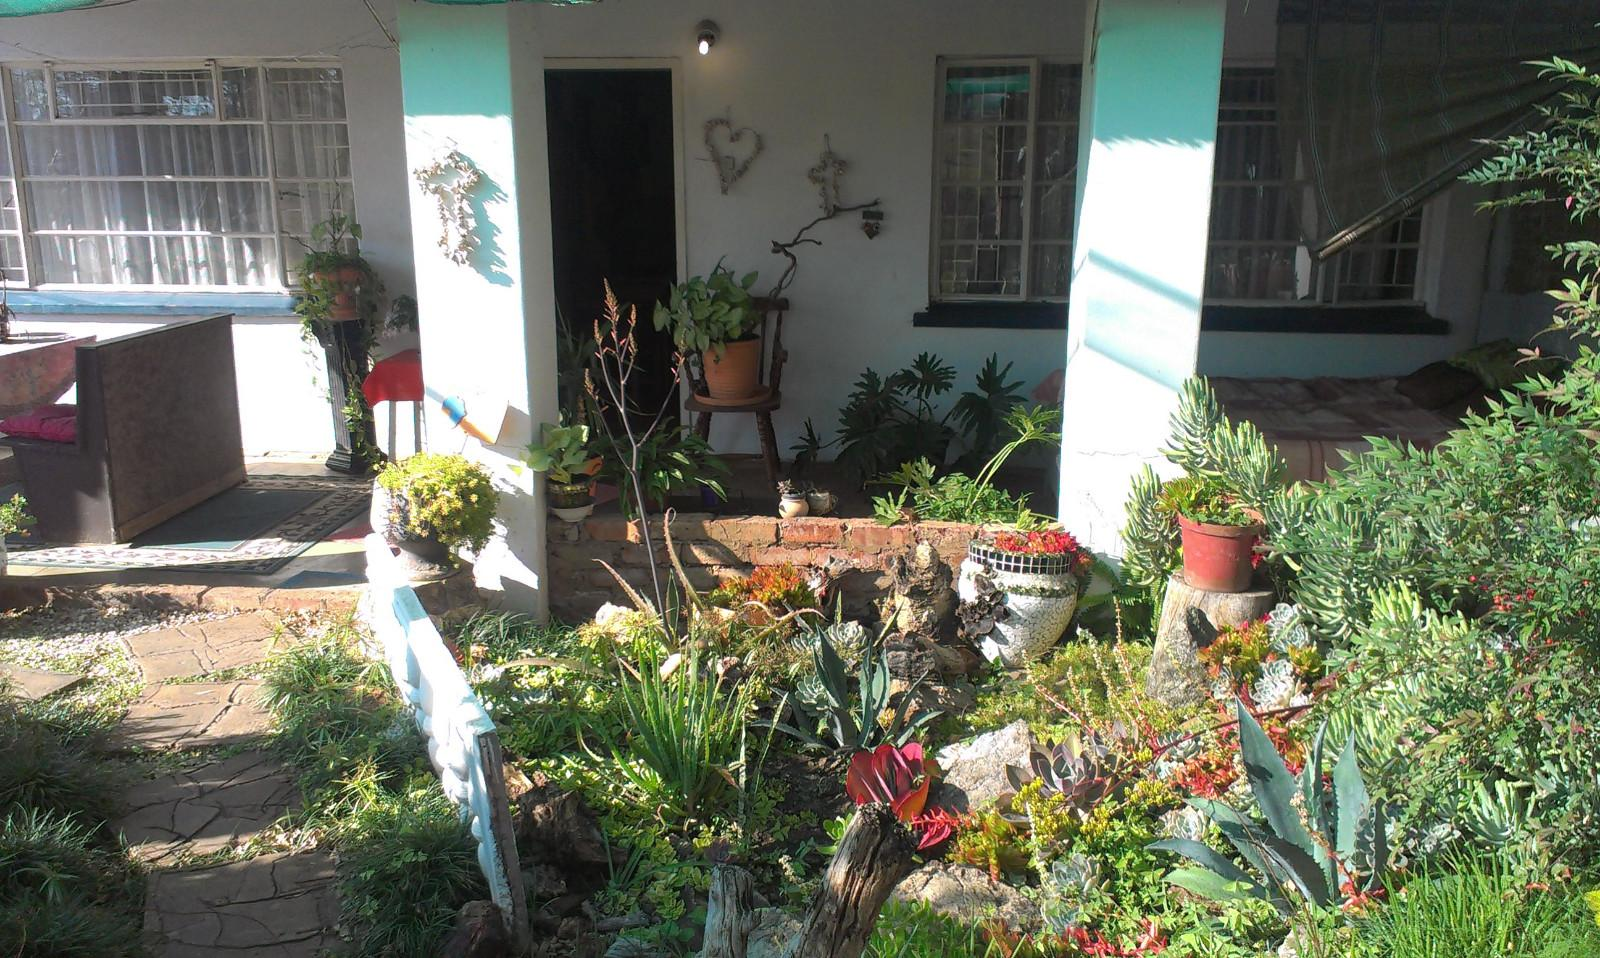 Vyfhoek property for sale. Ref No: 13350093. Picture no 1